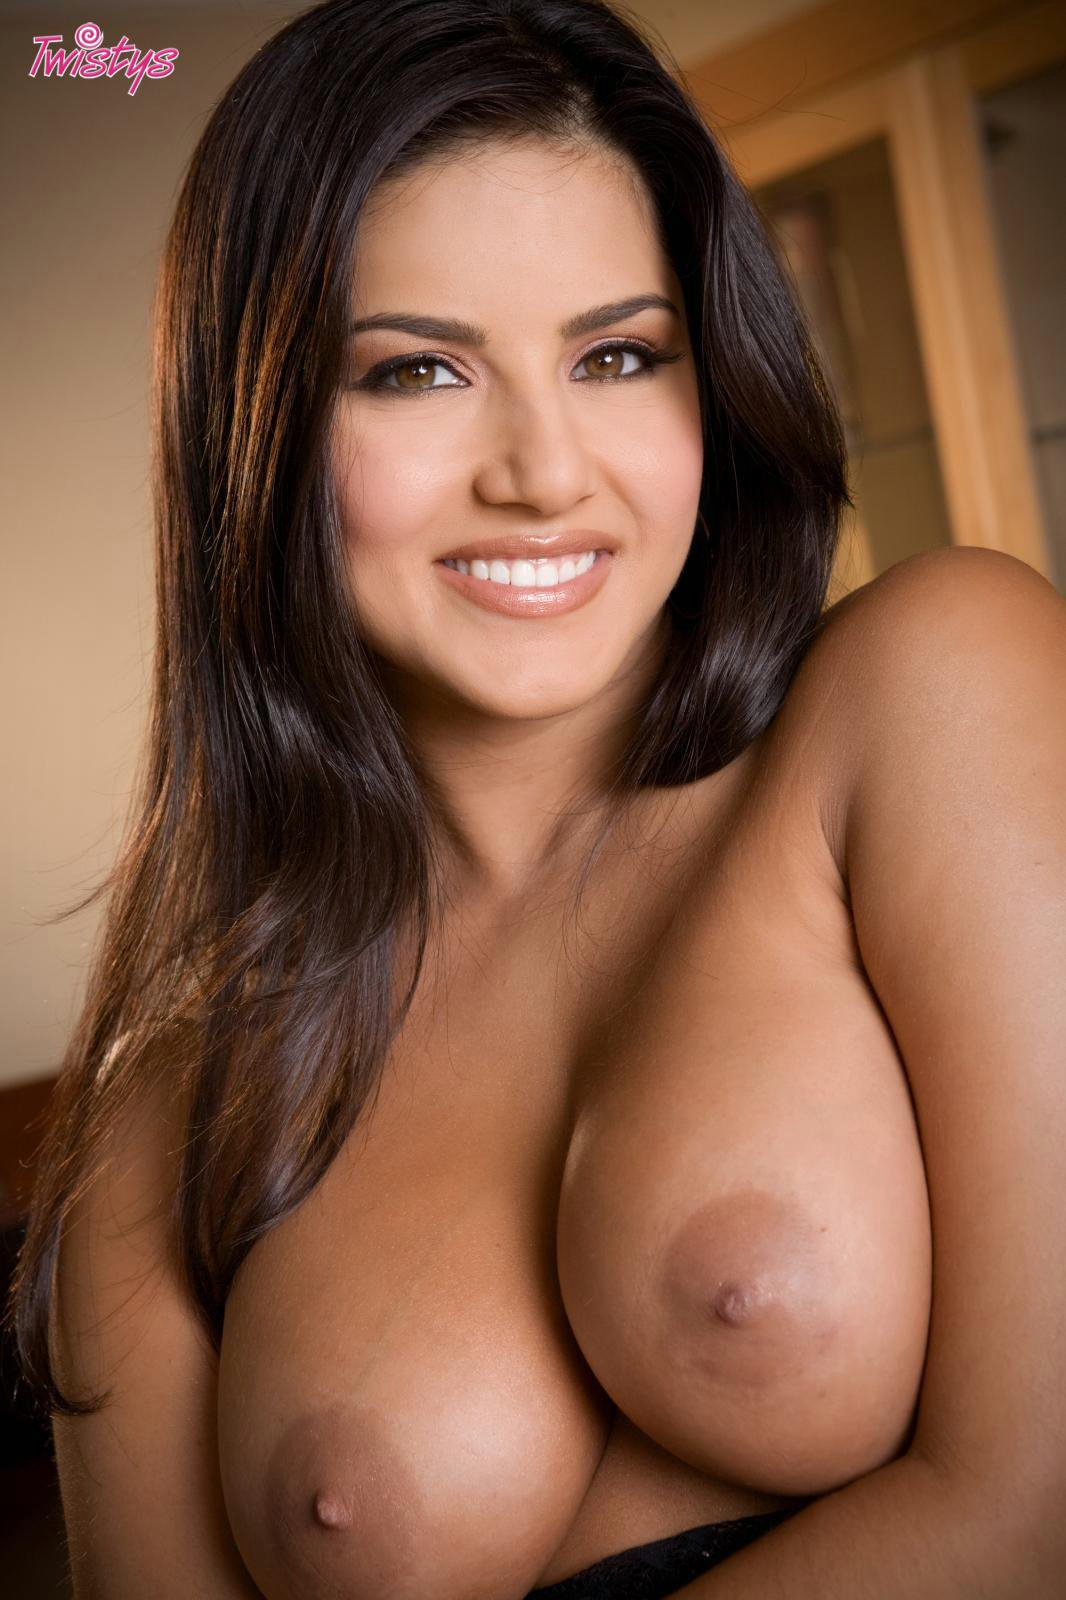 Busty Beauty Sunny Leone Posing And Dildoing Her Tight -6216